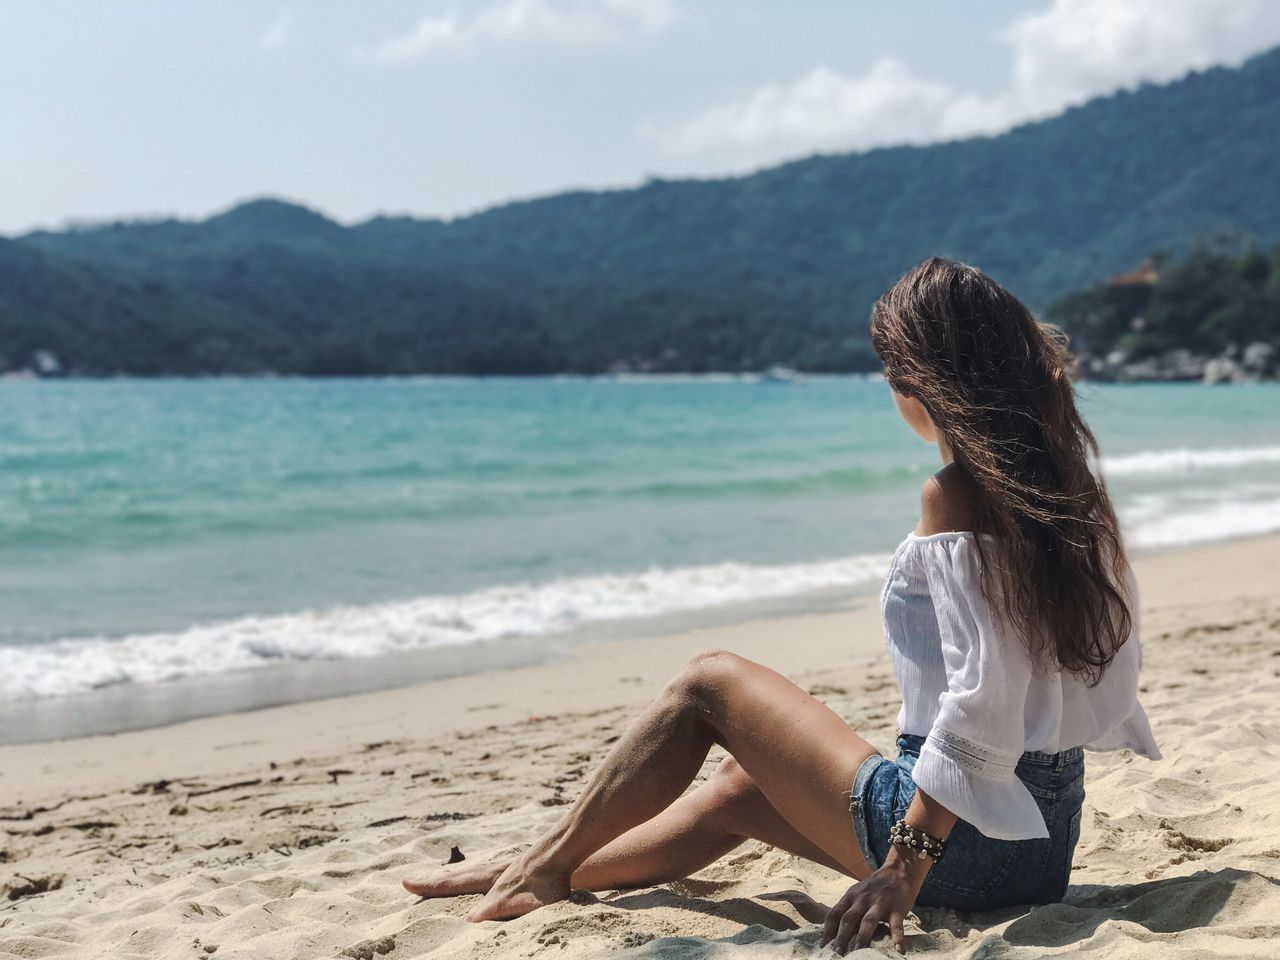 Beach Sea Sand One Person Nature Water Young Adult Day Young Women Leisure Activity Beauty In Nature Long Hair Mountain Outdoors Sky Focus On Foreground Beautiful Woman Lifestyles Scenics Real People Thailand Travel Destinations Koh Phangan Tropical Paradise Relaxing